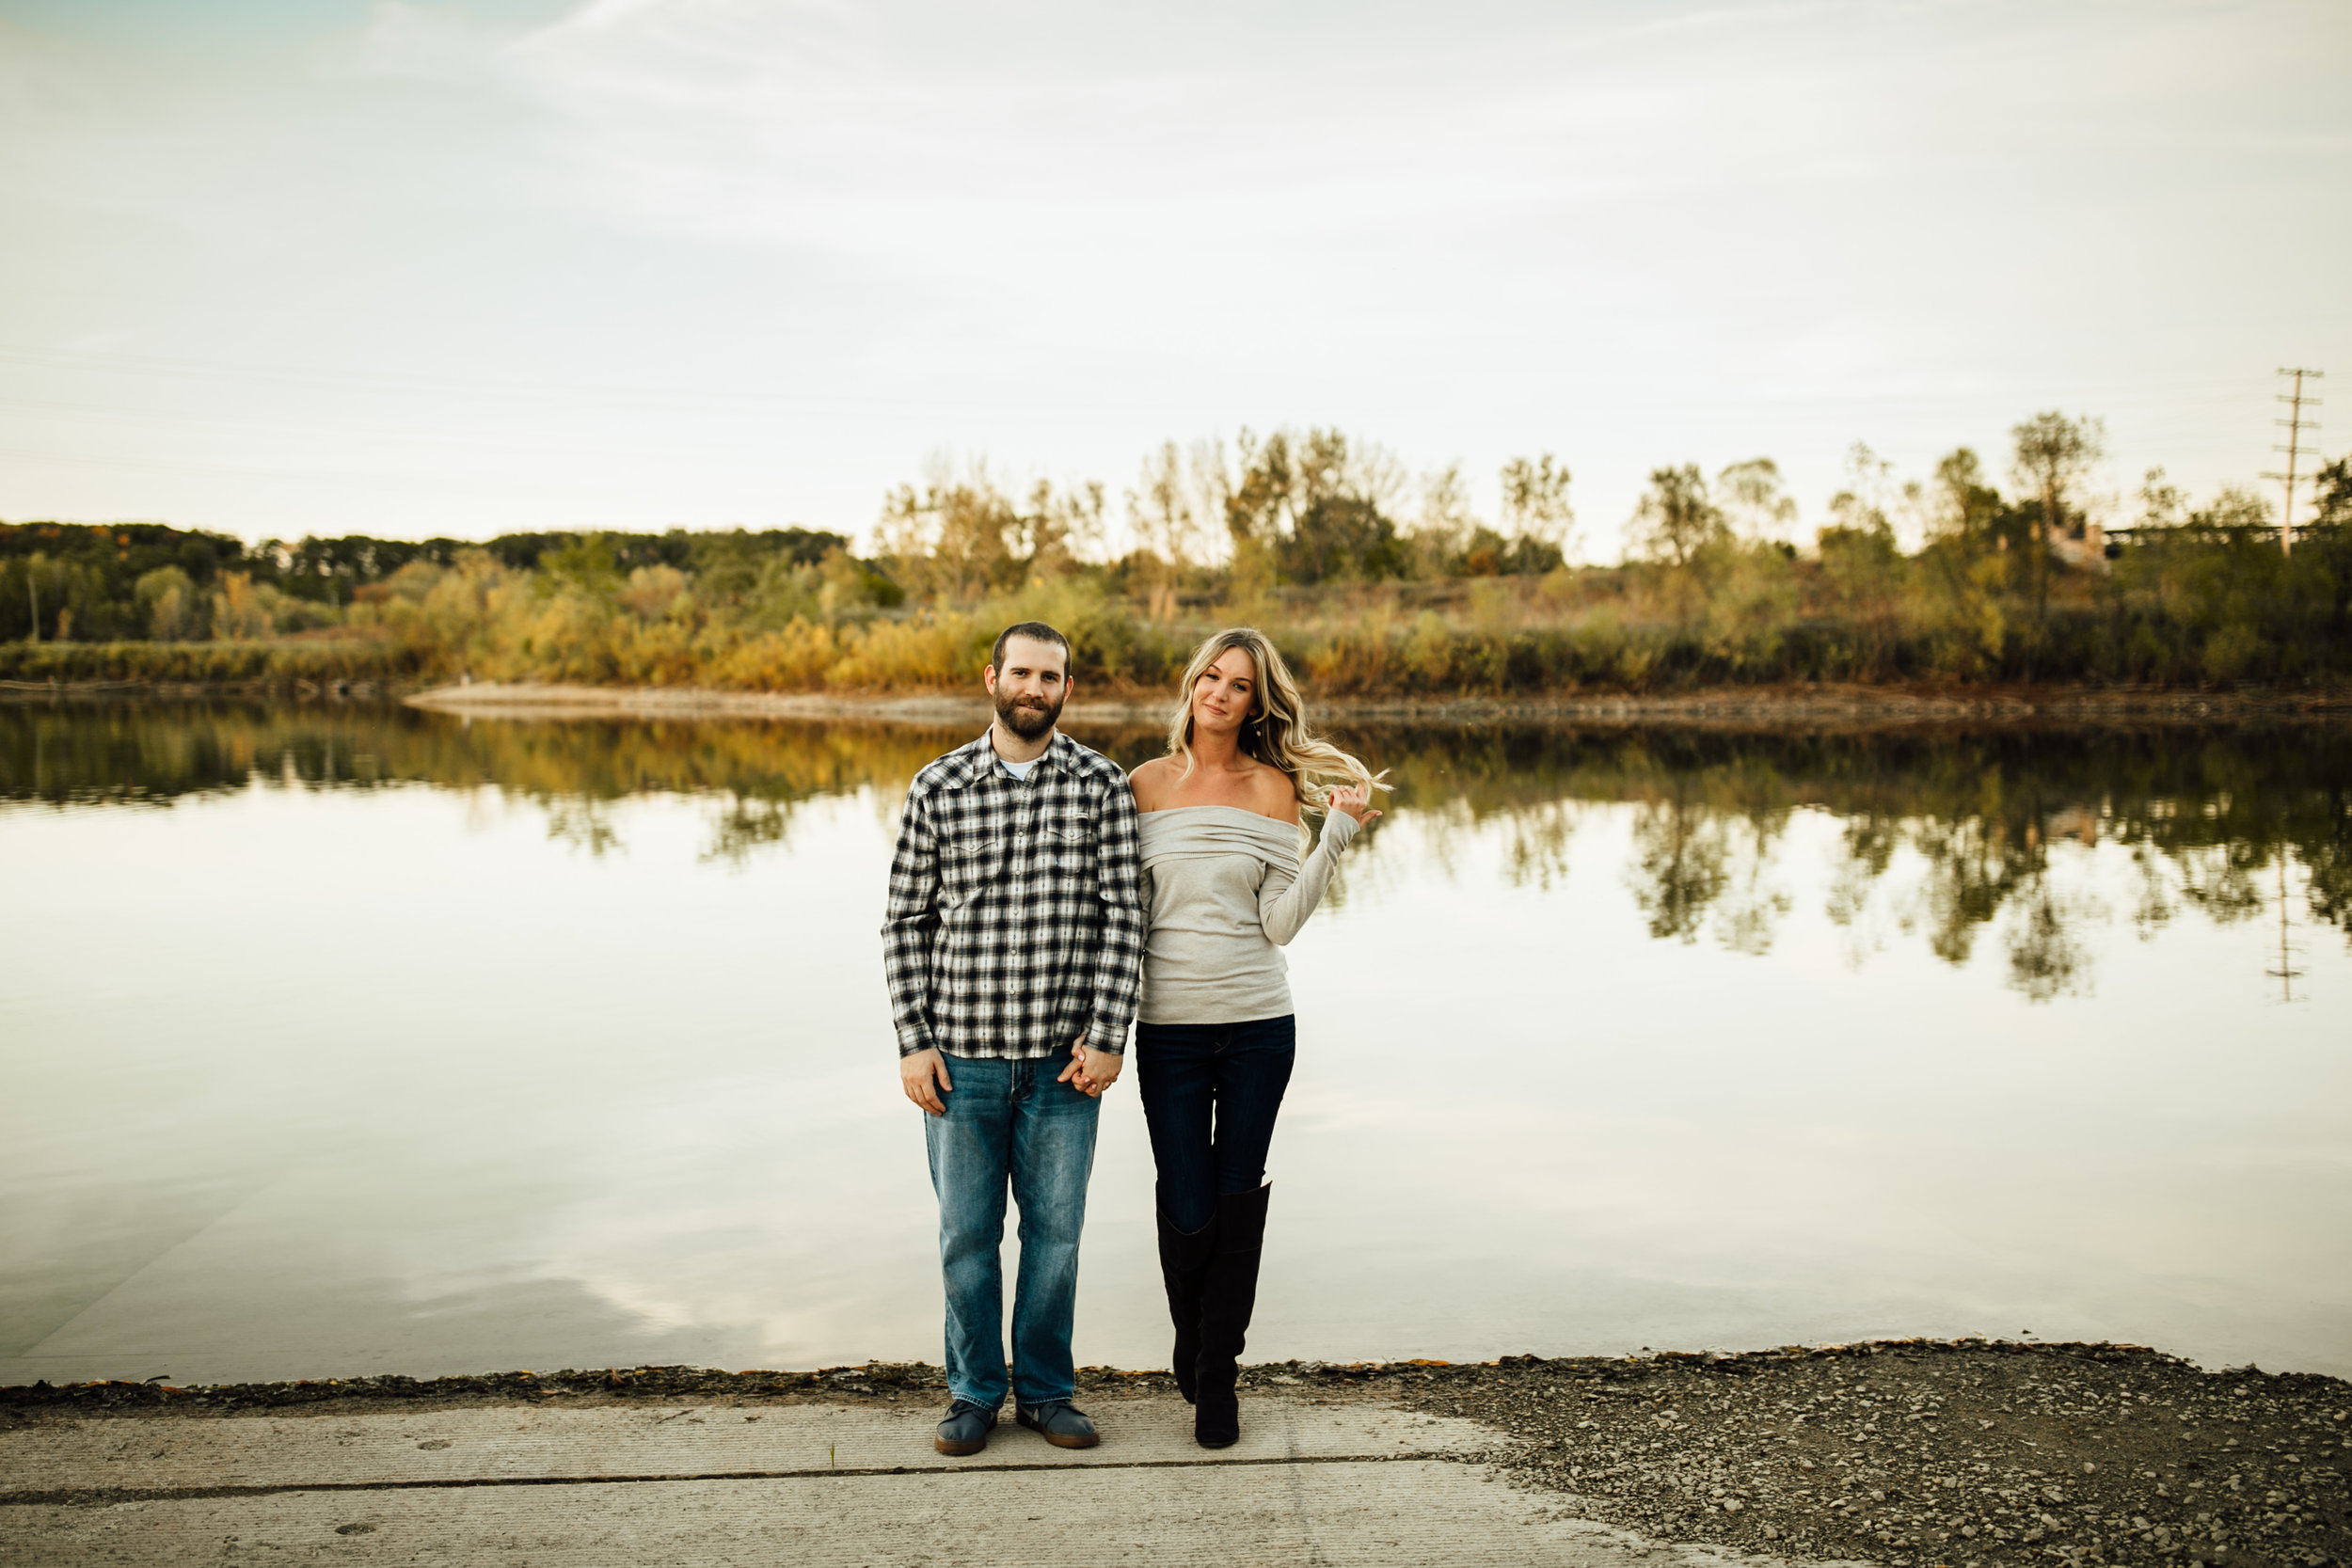 Stephanie-Tim-Grand-Rapids-Engagement-Michigan-Wedding-Photographer-191.jpg